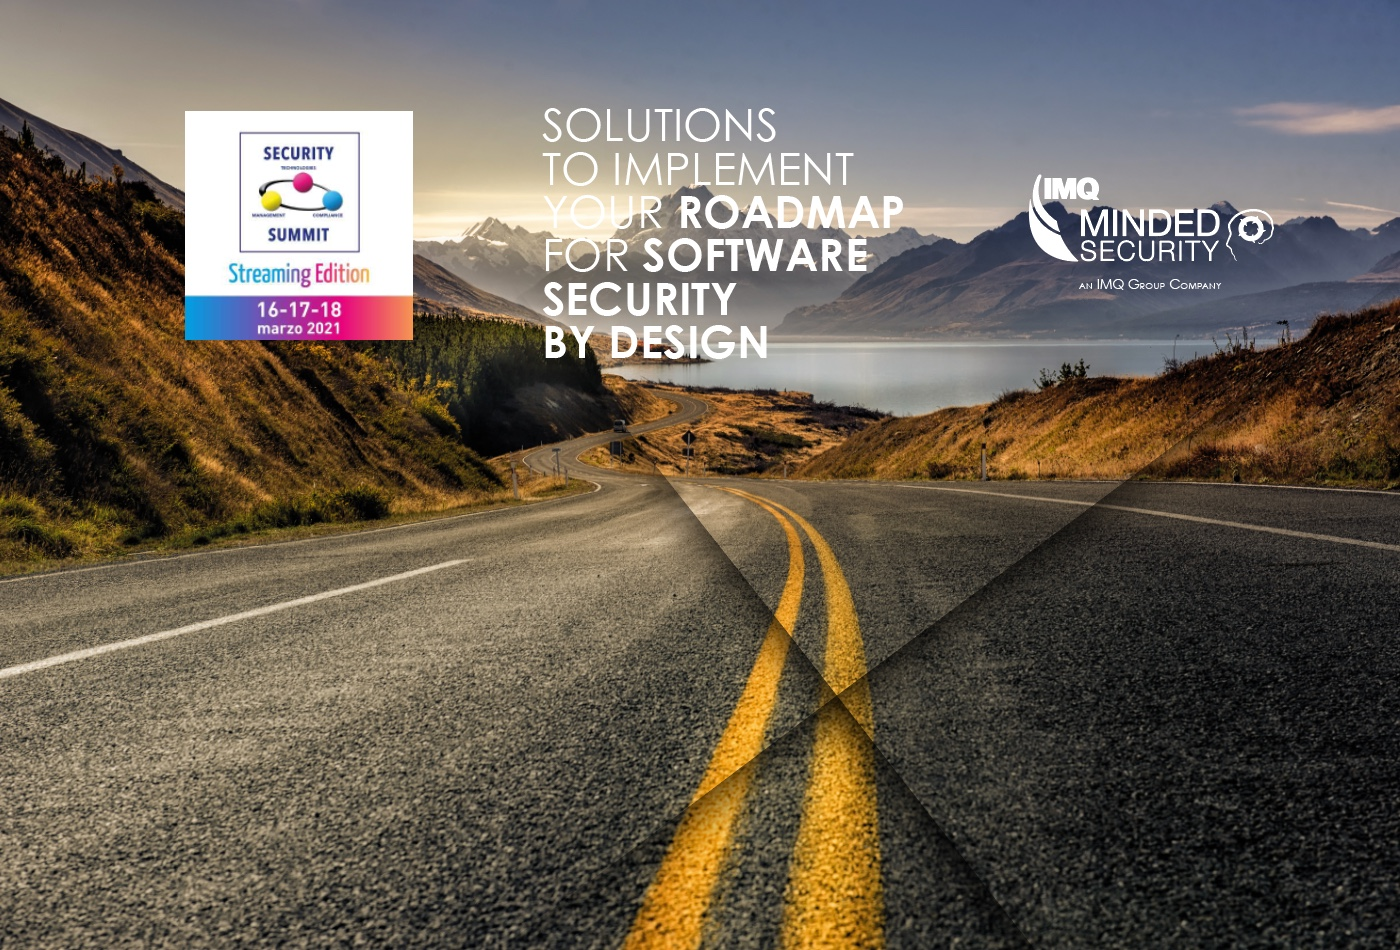 IMQ Minded Security al Security Summit 2021